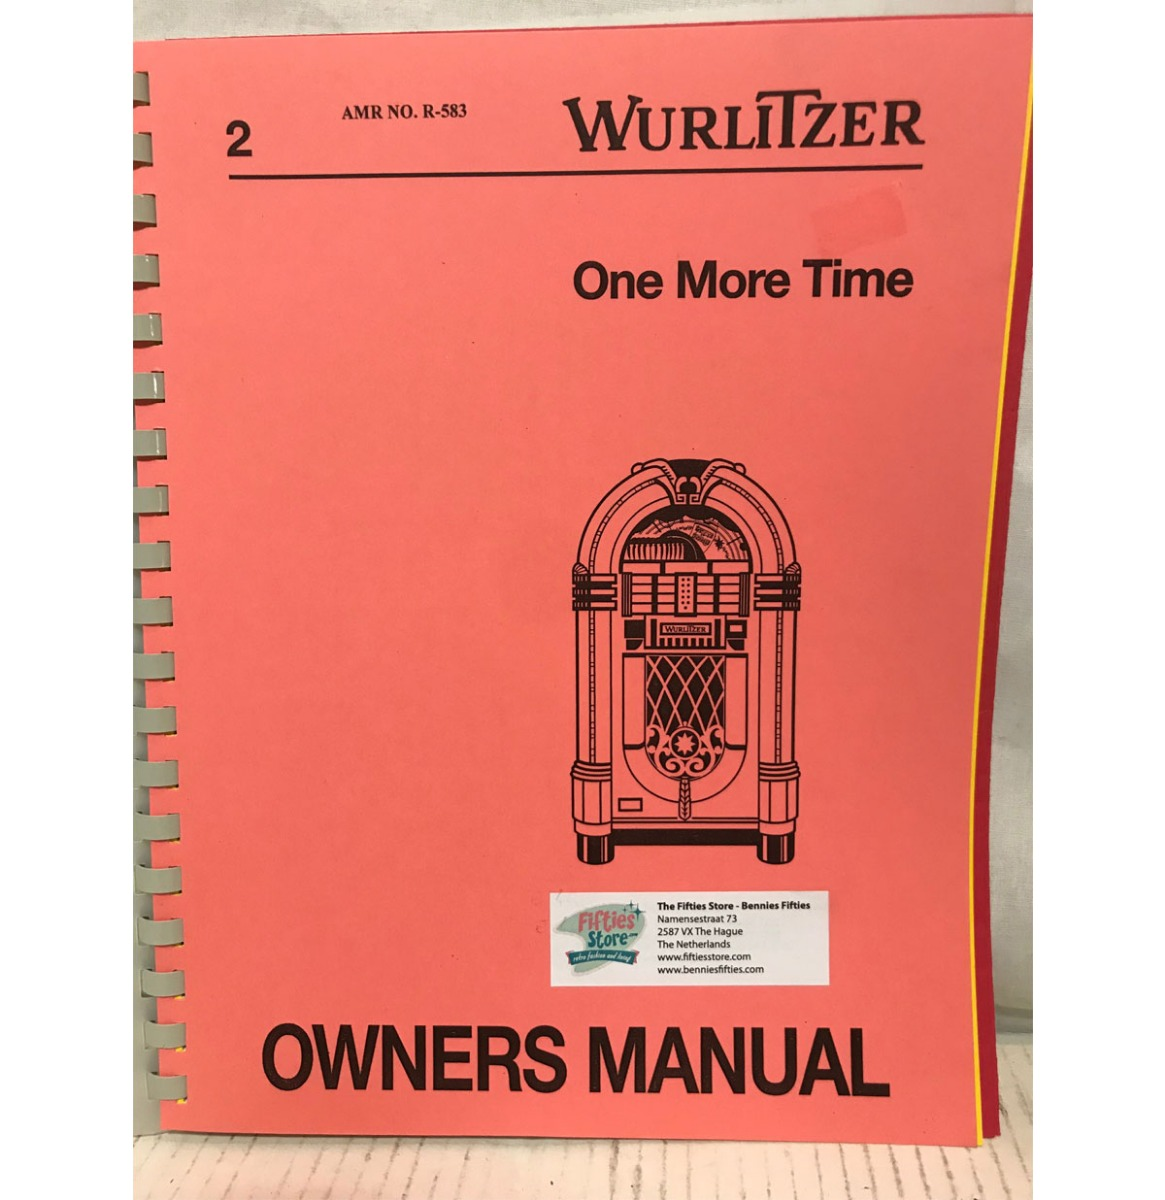 Wurlitzer One More Time Manual